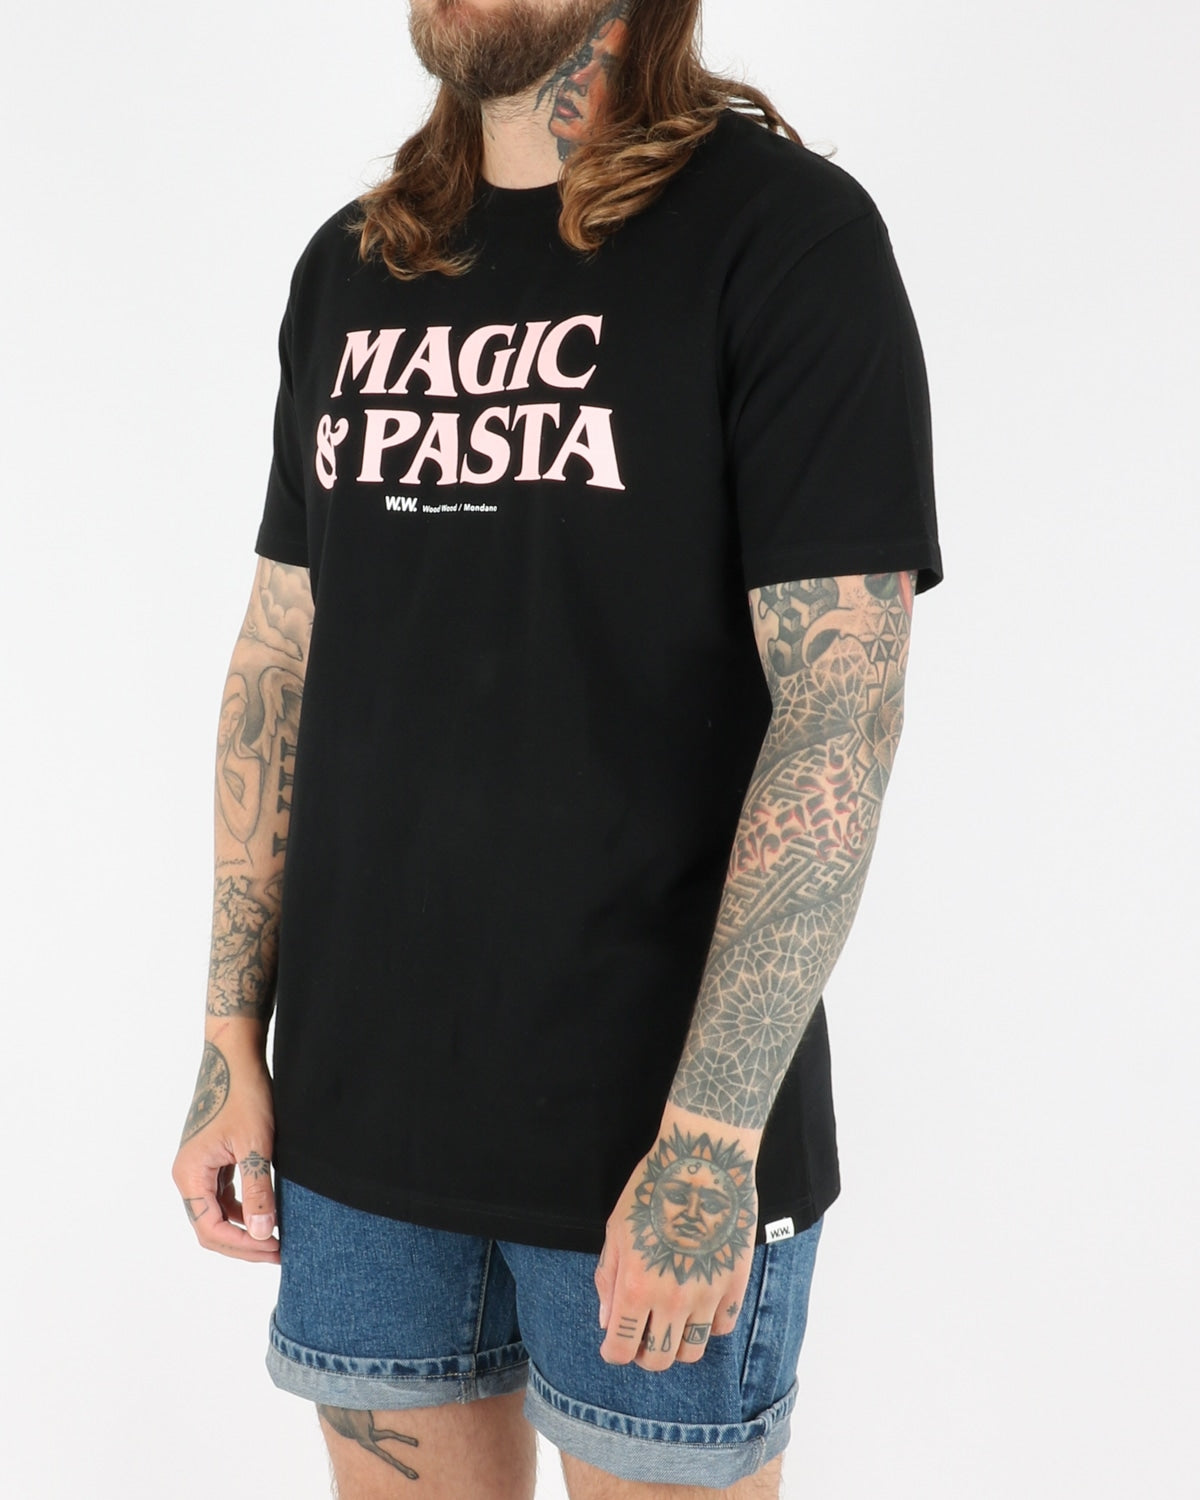 wood wood_magic & pasta t-shirt_black_2_3